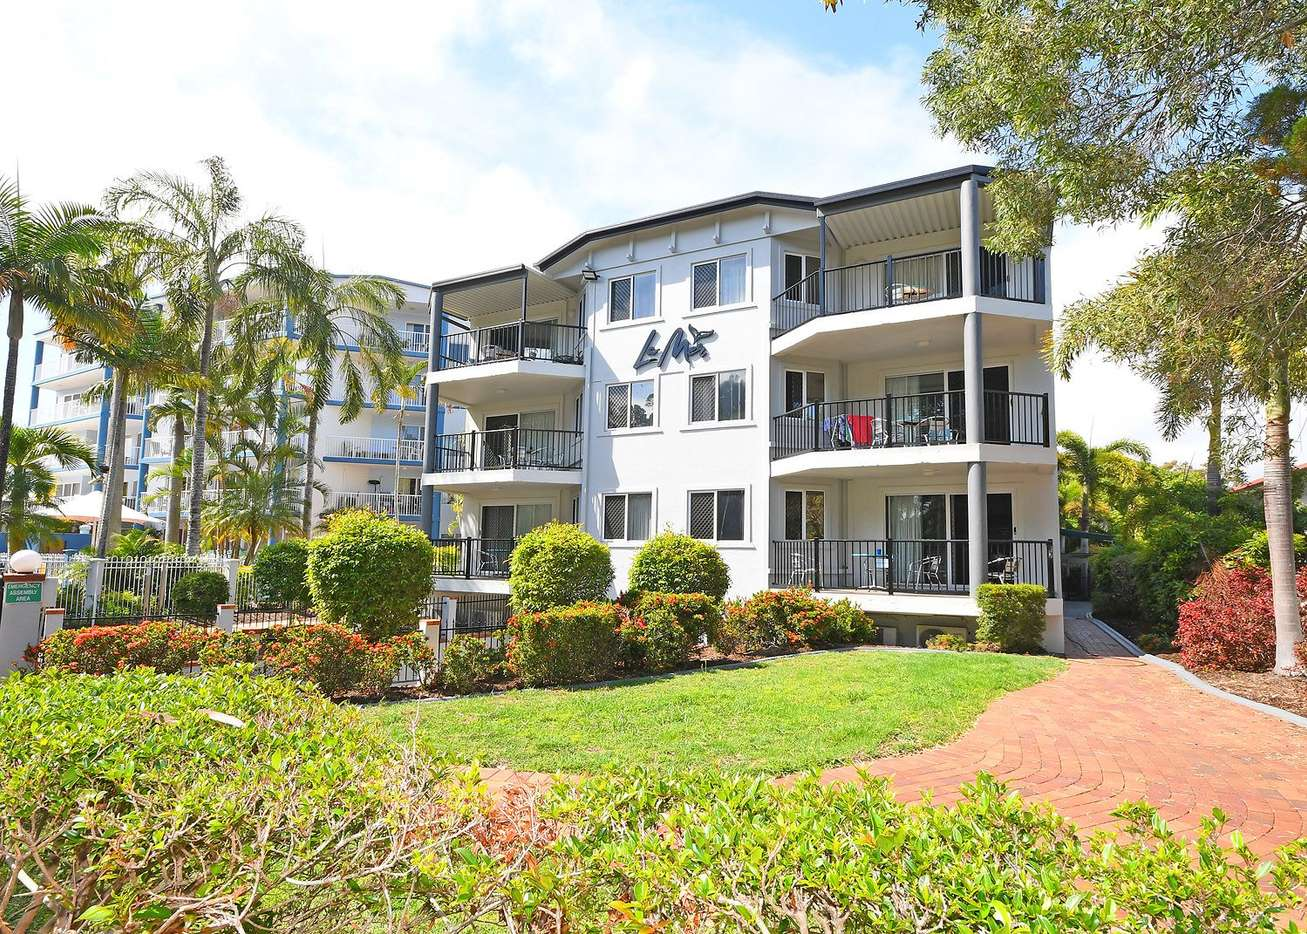 Main view of Homely unit listing, 11/396 Charlton Esplanade, Torquay, QLD 4655